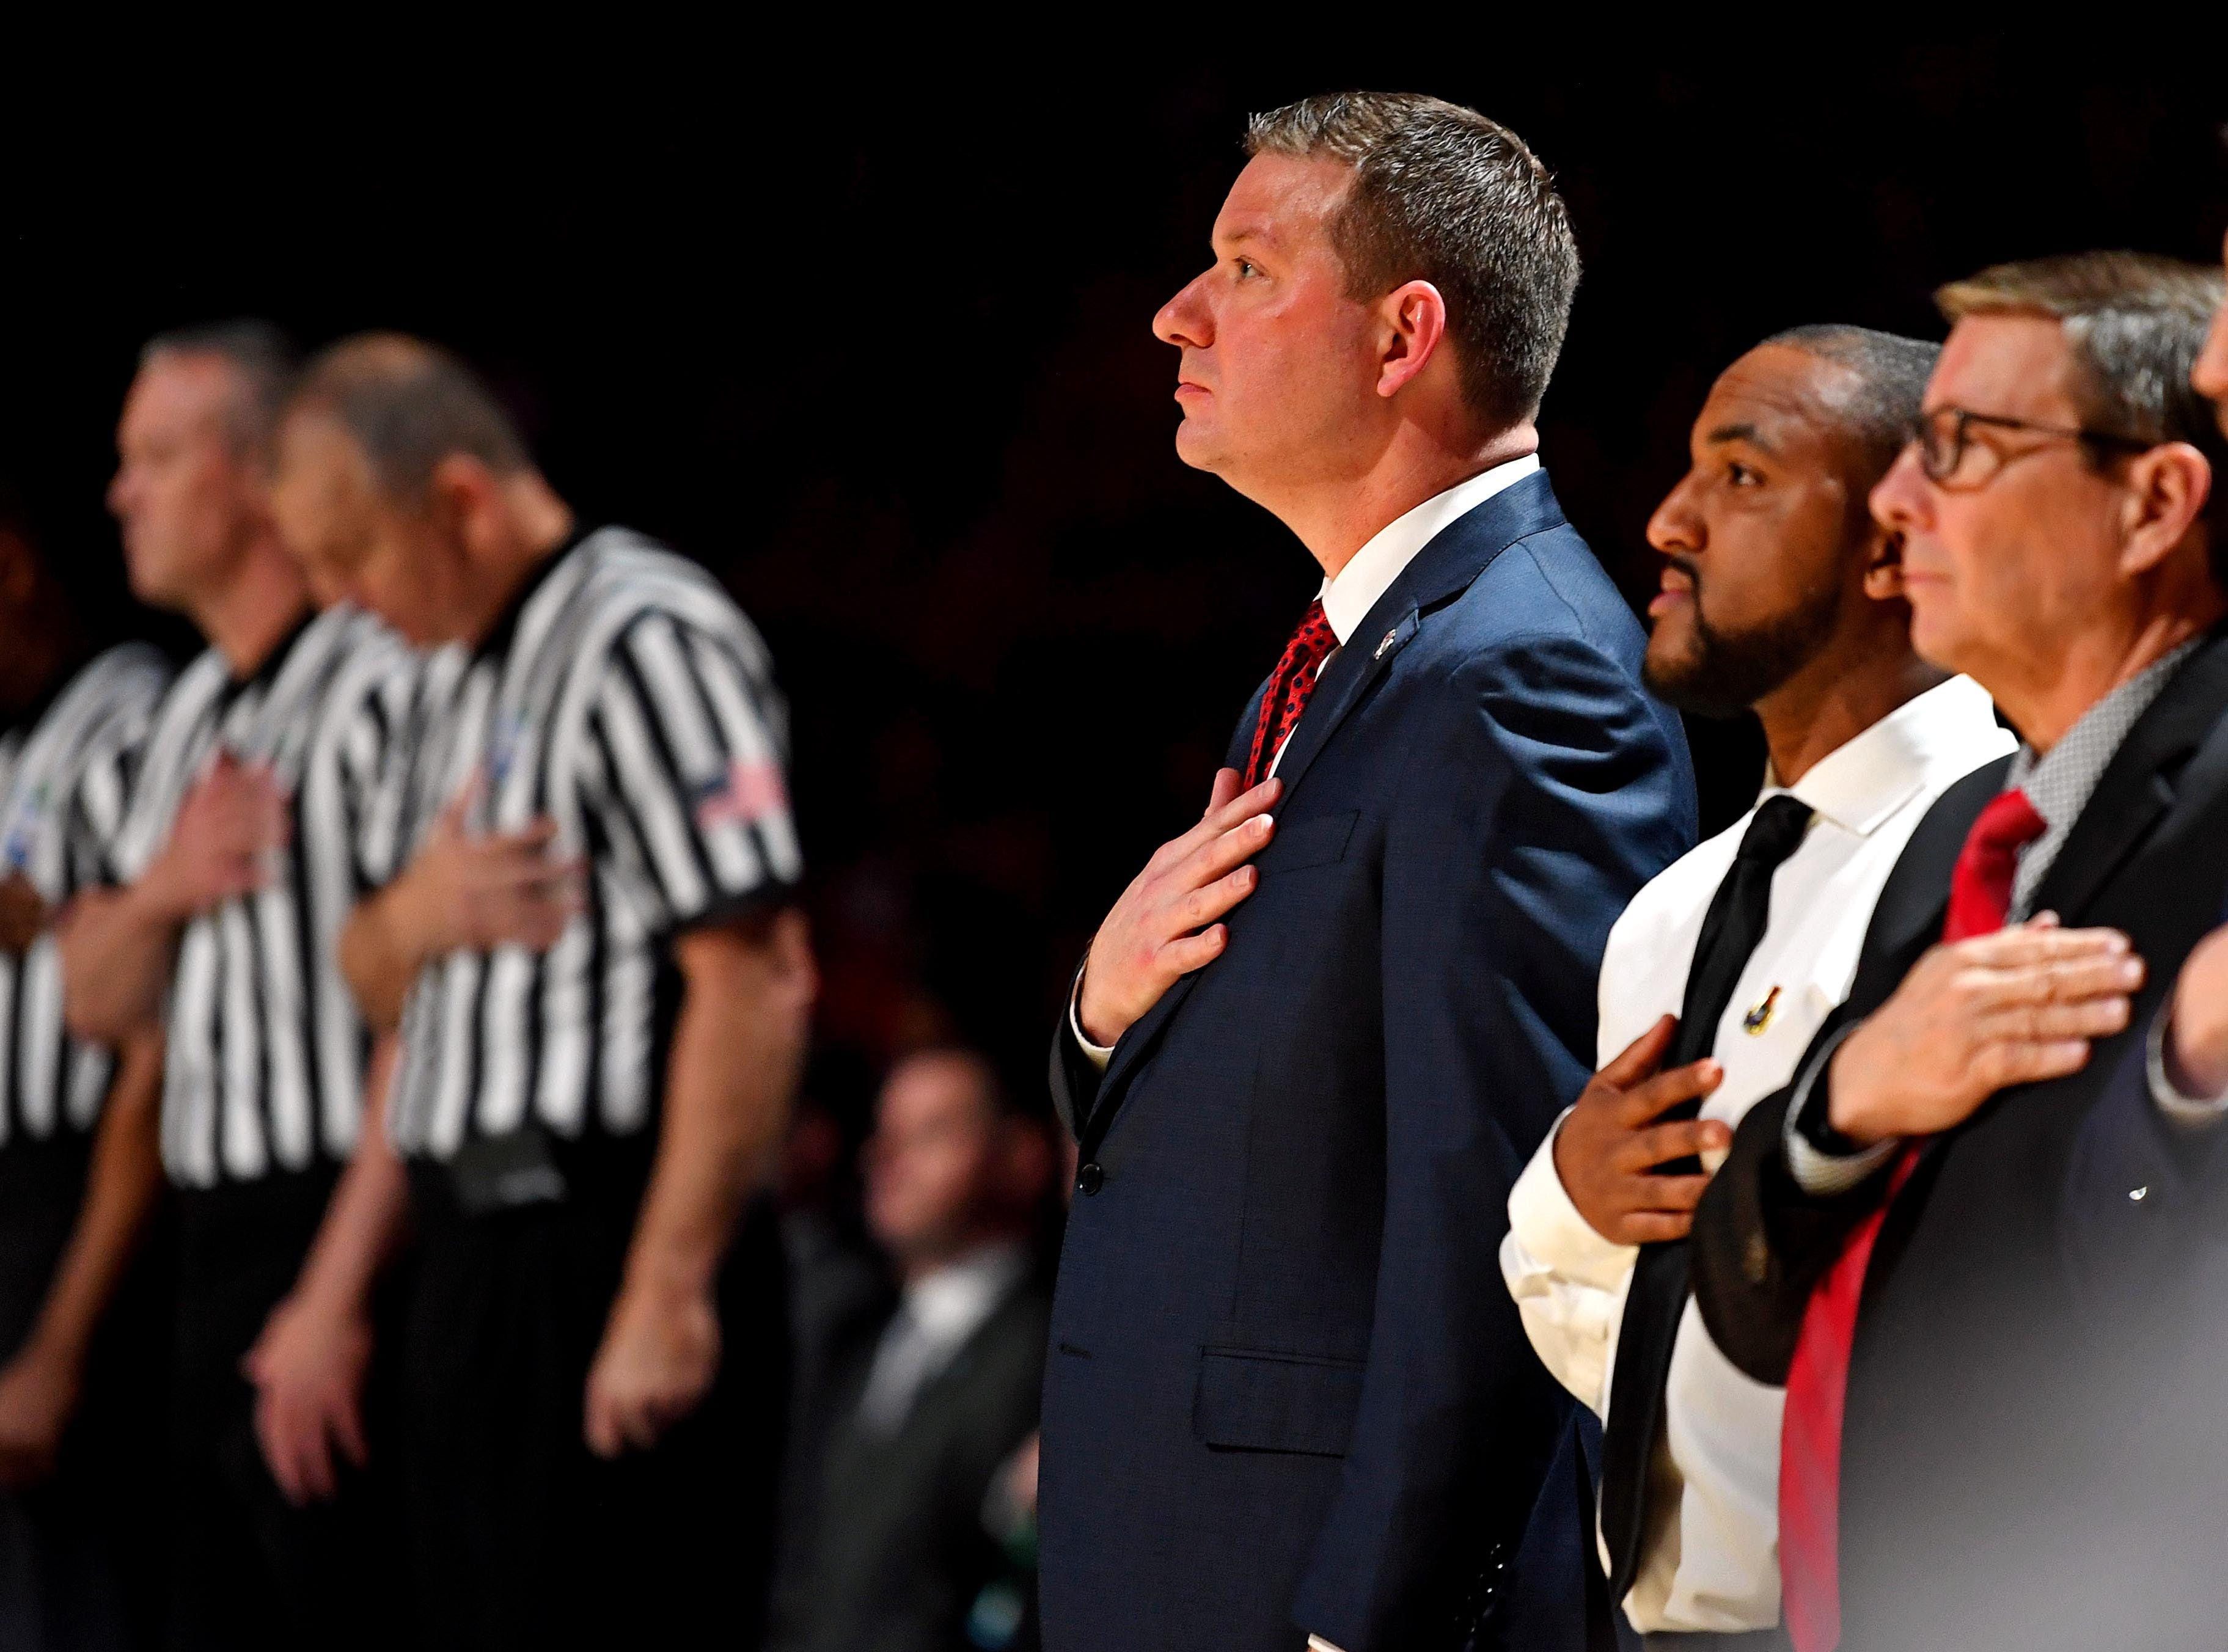 Apr 8, 2019; Minneapolis, MN, USA; Texas Tech Red Raiders head coach Chris Beard stands for the national anthem before the game against the Virginia Cavaliers in the championship game of the 2019 men's Final Four at US Bank Stadium. Mandatory Credit: Bob Donnan-USA TODAY Sports